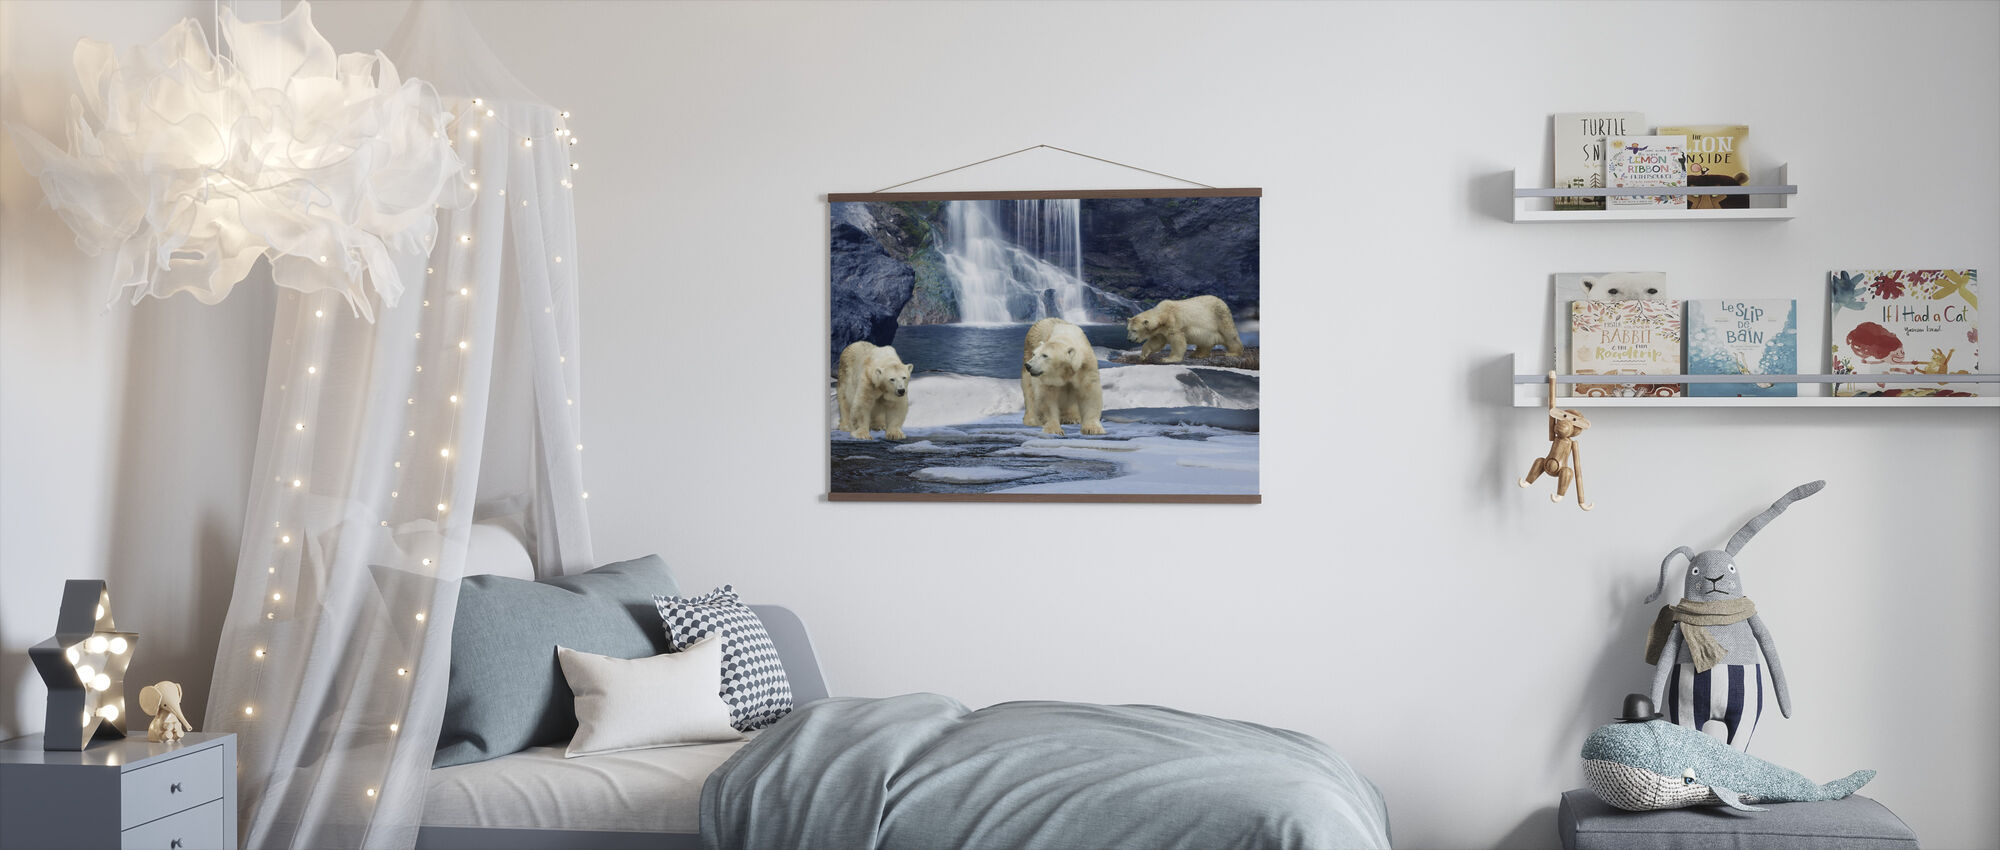 Polarbear Winter - Poster - Kids Room